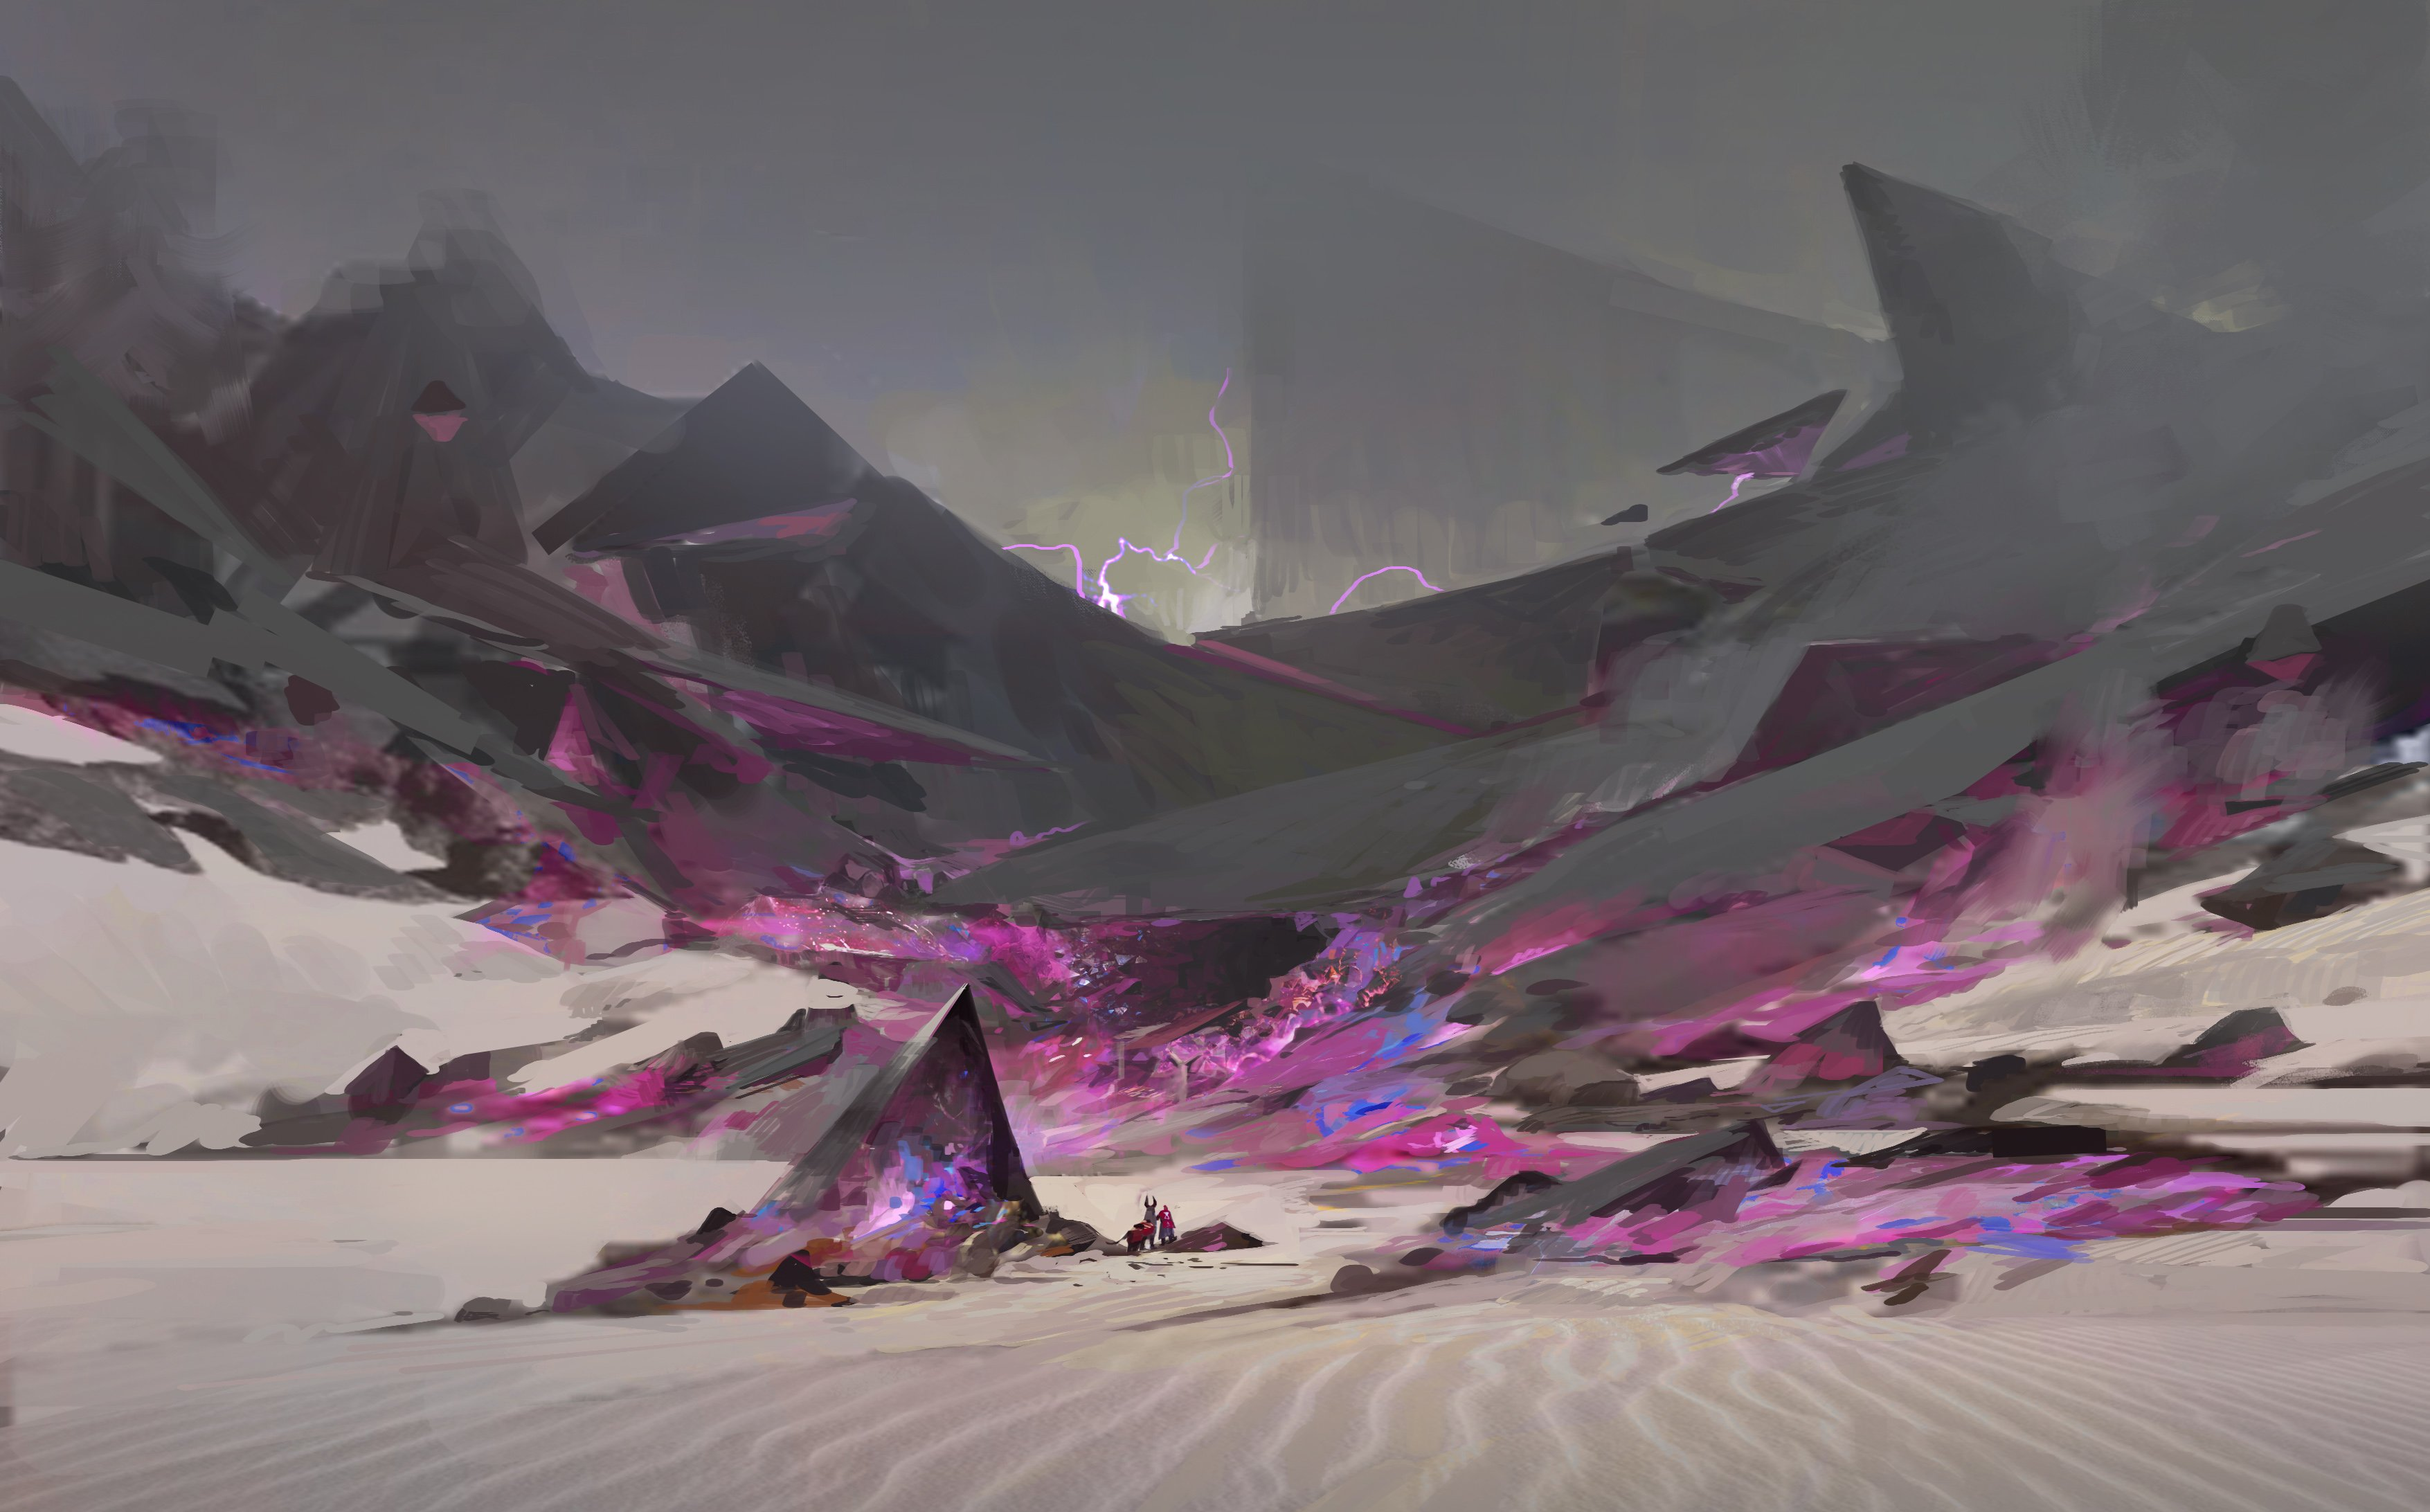 Arenanets latest expansion guild wars 2 path of fire out now guild wars 2 path of fire expansion concept forumfinder Gallery